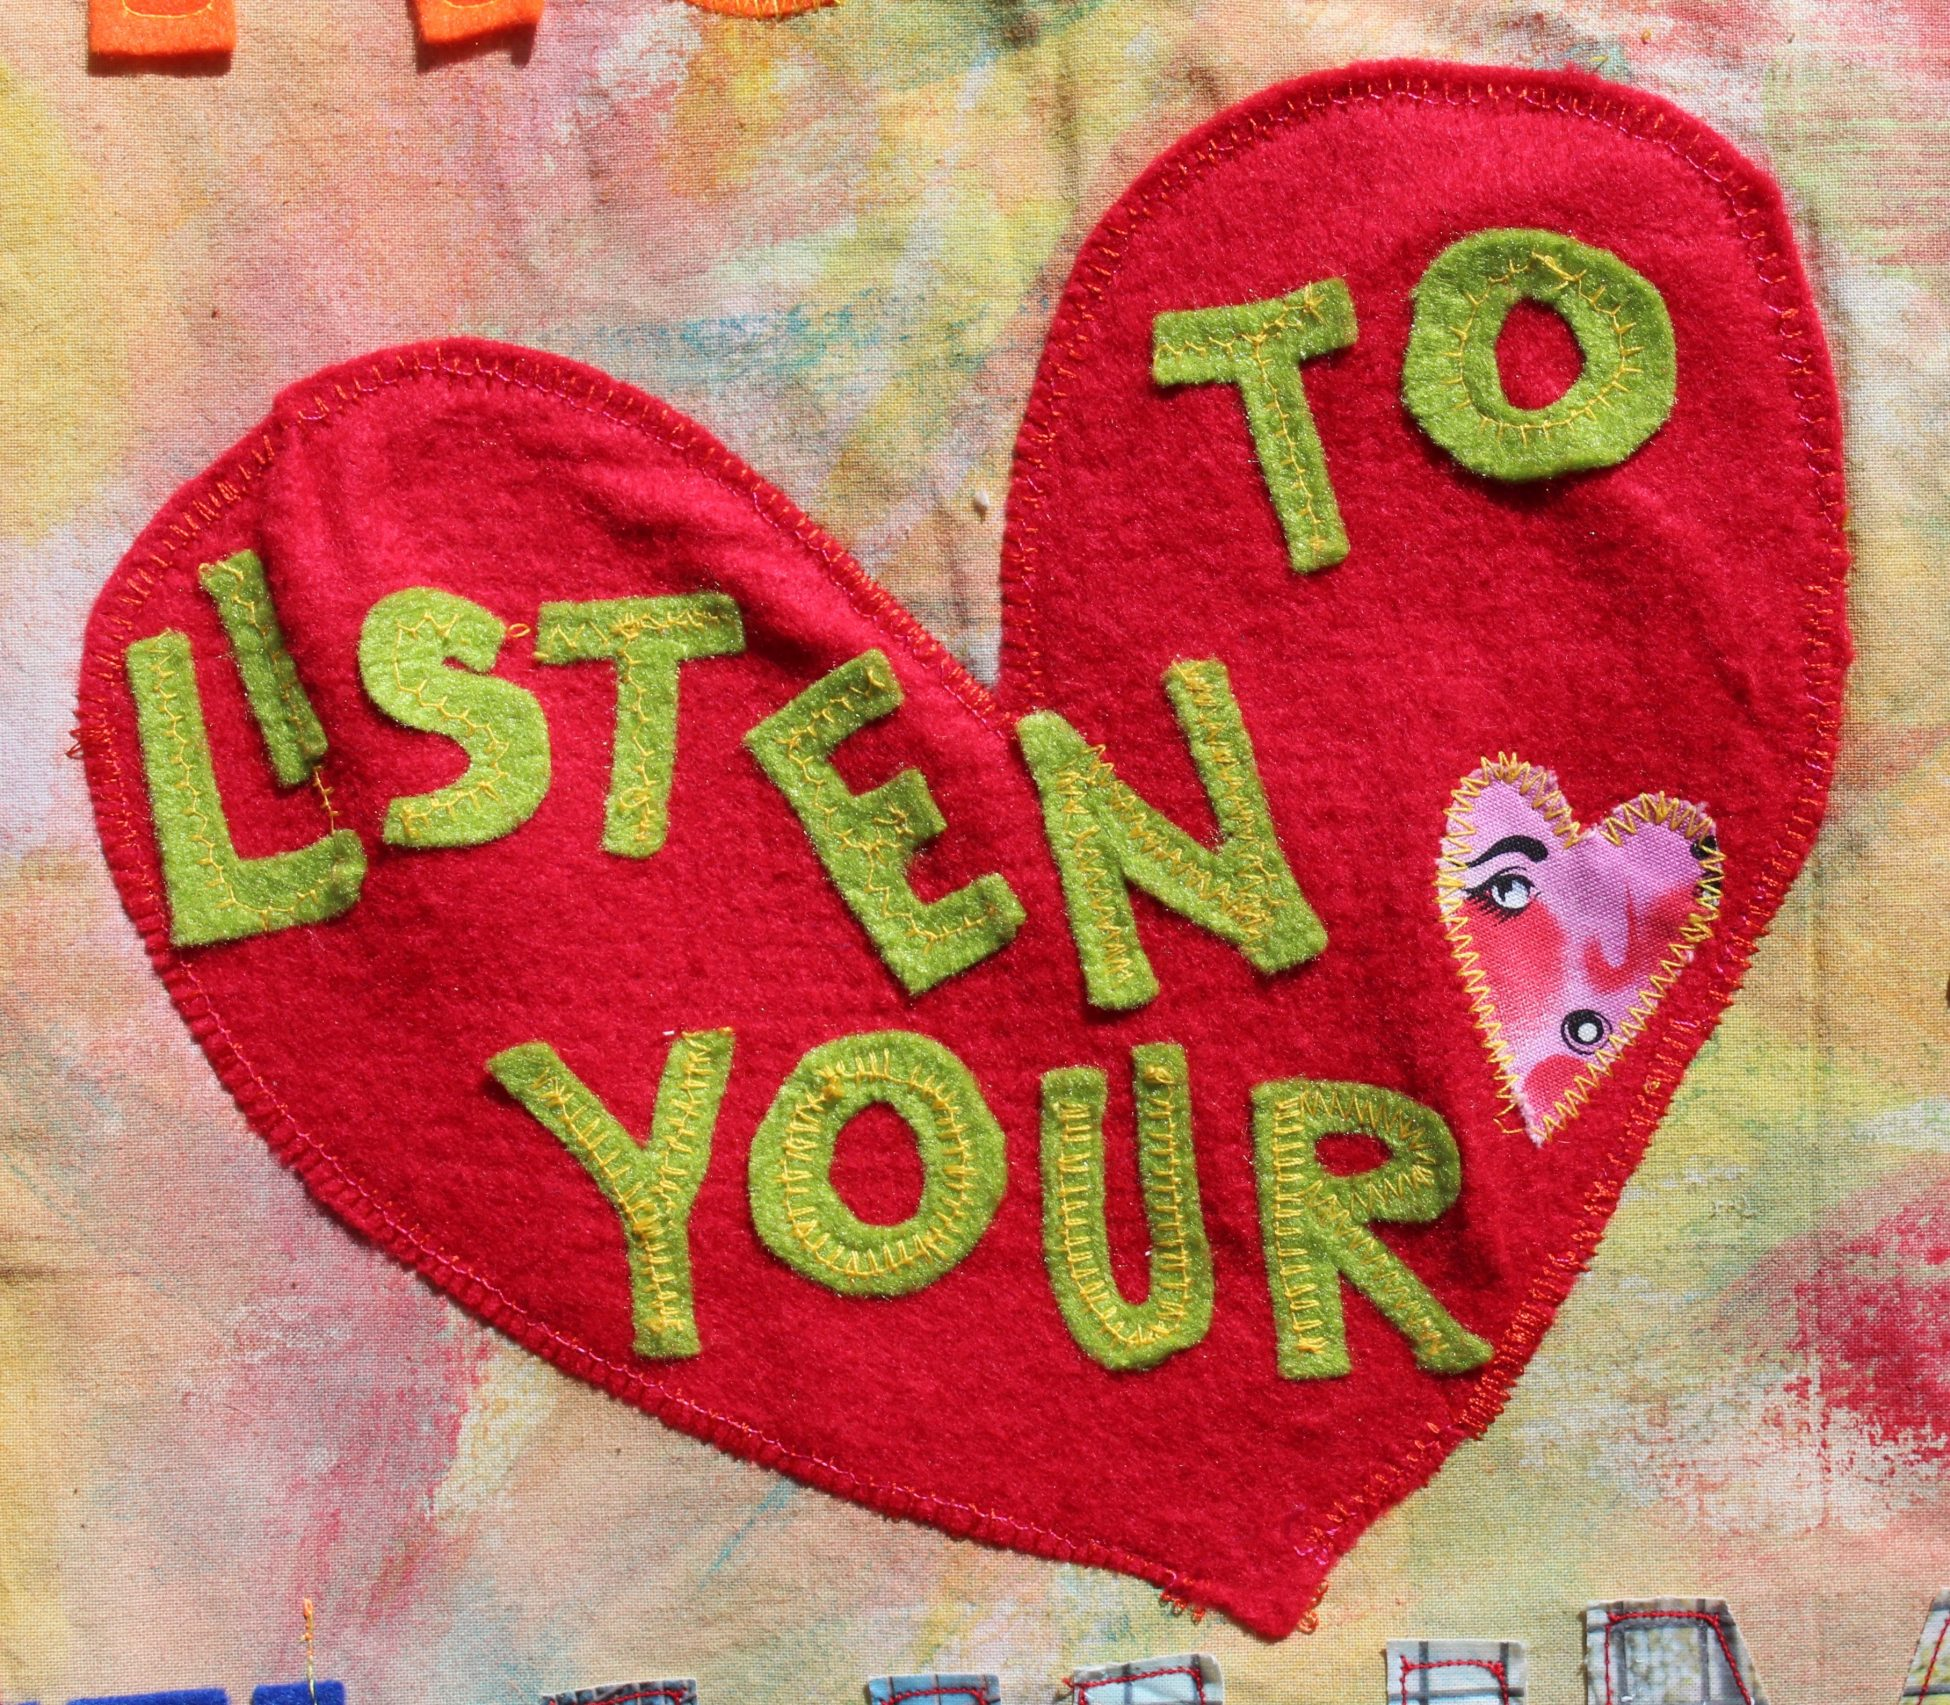 A red felt heart which has been stitched to the pastel painted fabric. On top of the heart are green felt letters spelling out